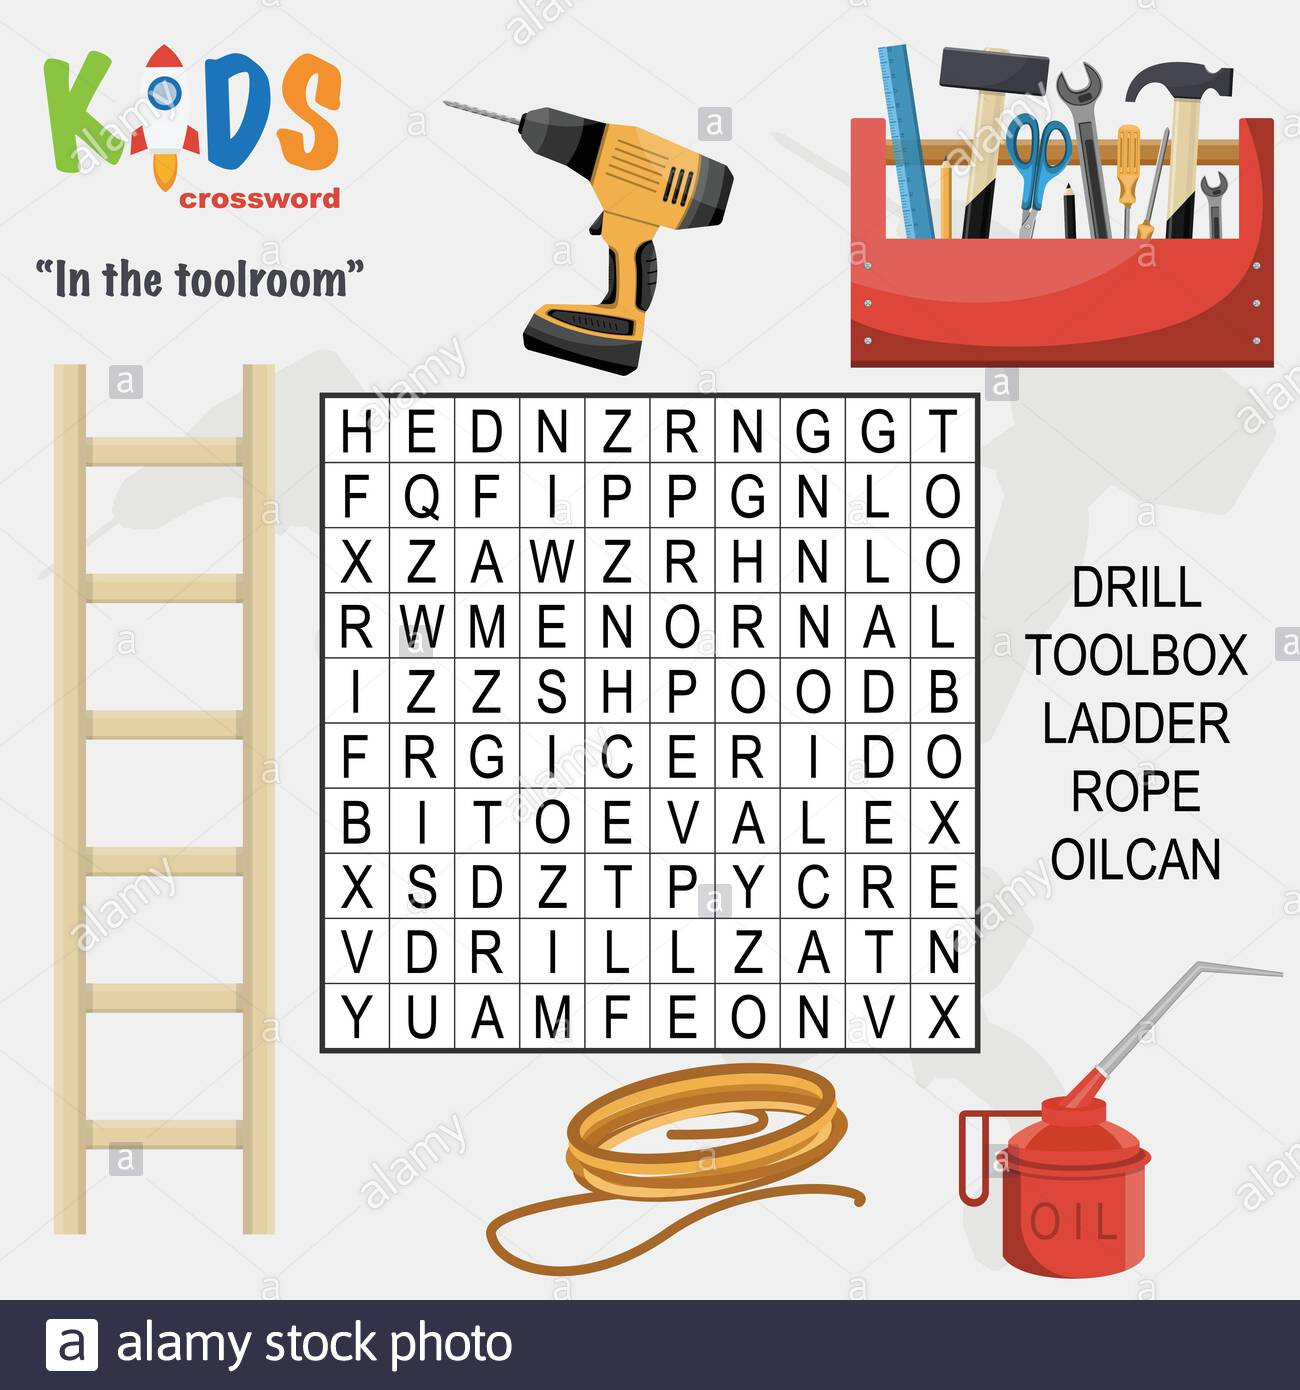 Word Ladders Middle School Easy Word Search Crossword Puzzle at the toolroom for